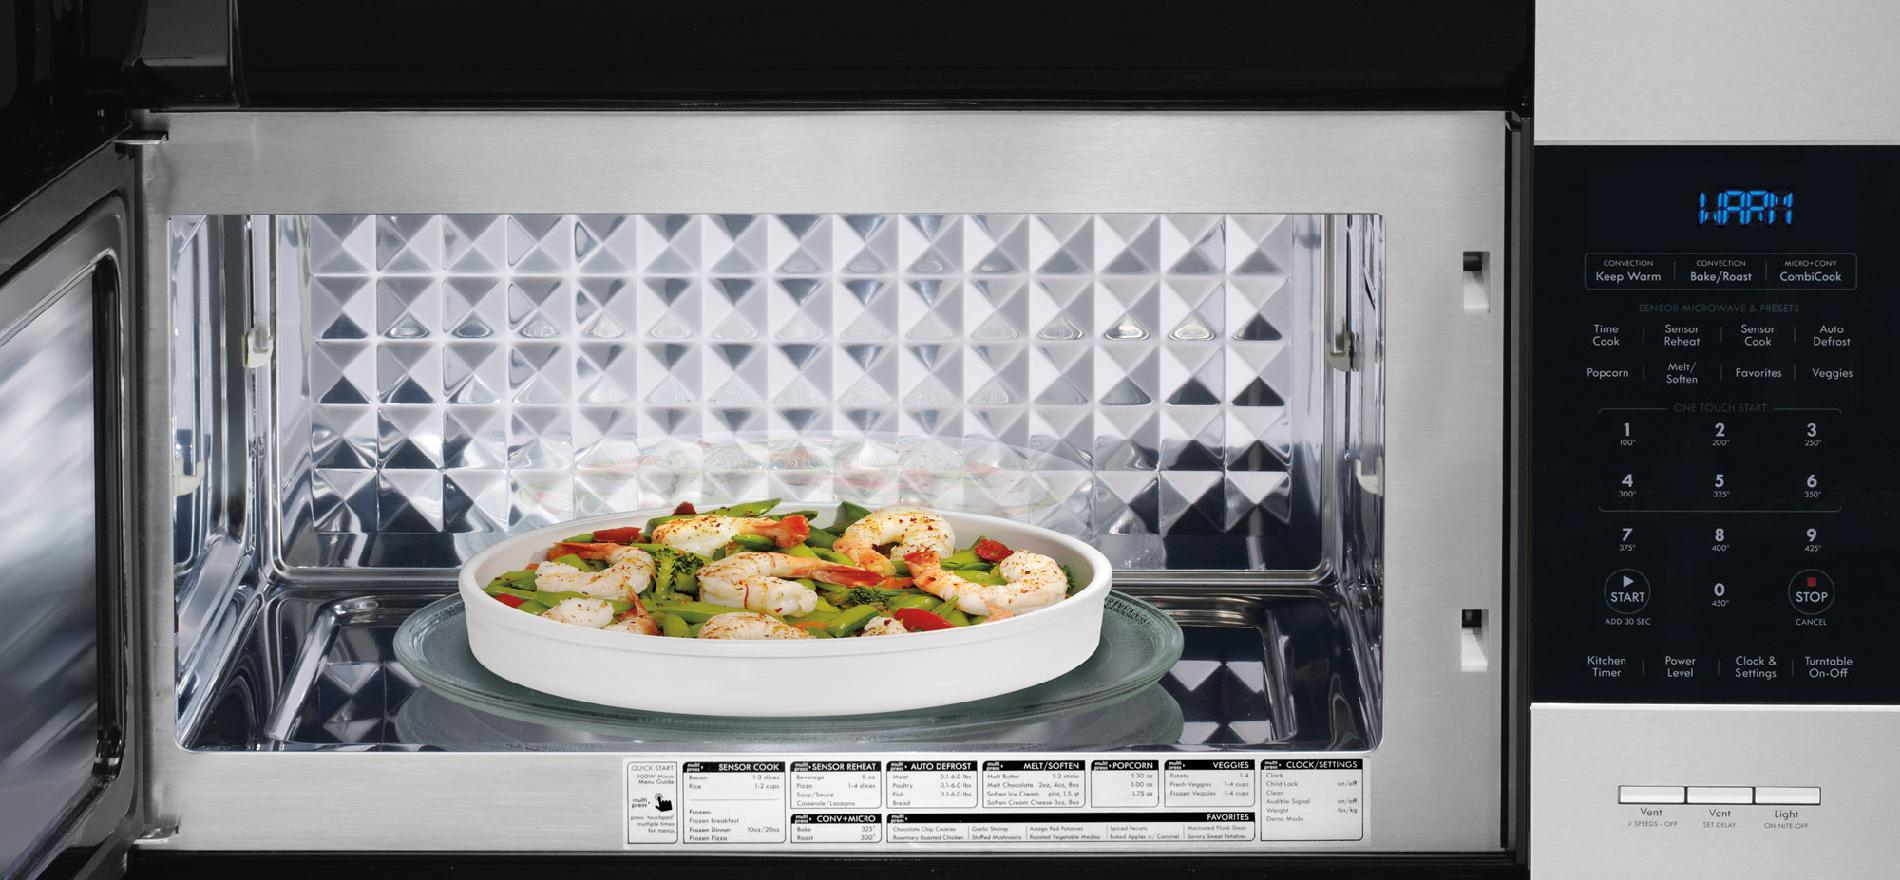 Kenmore Elite 1.5 cu ft Over-the-Range Microwave